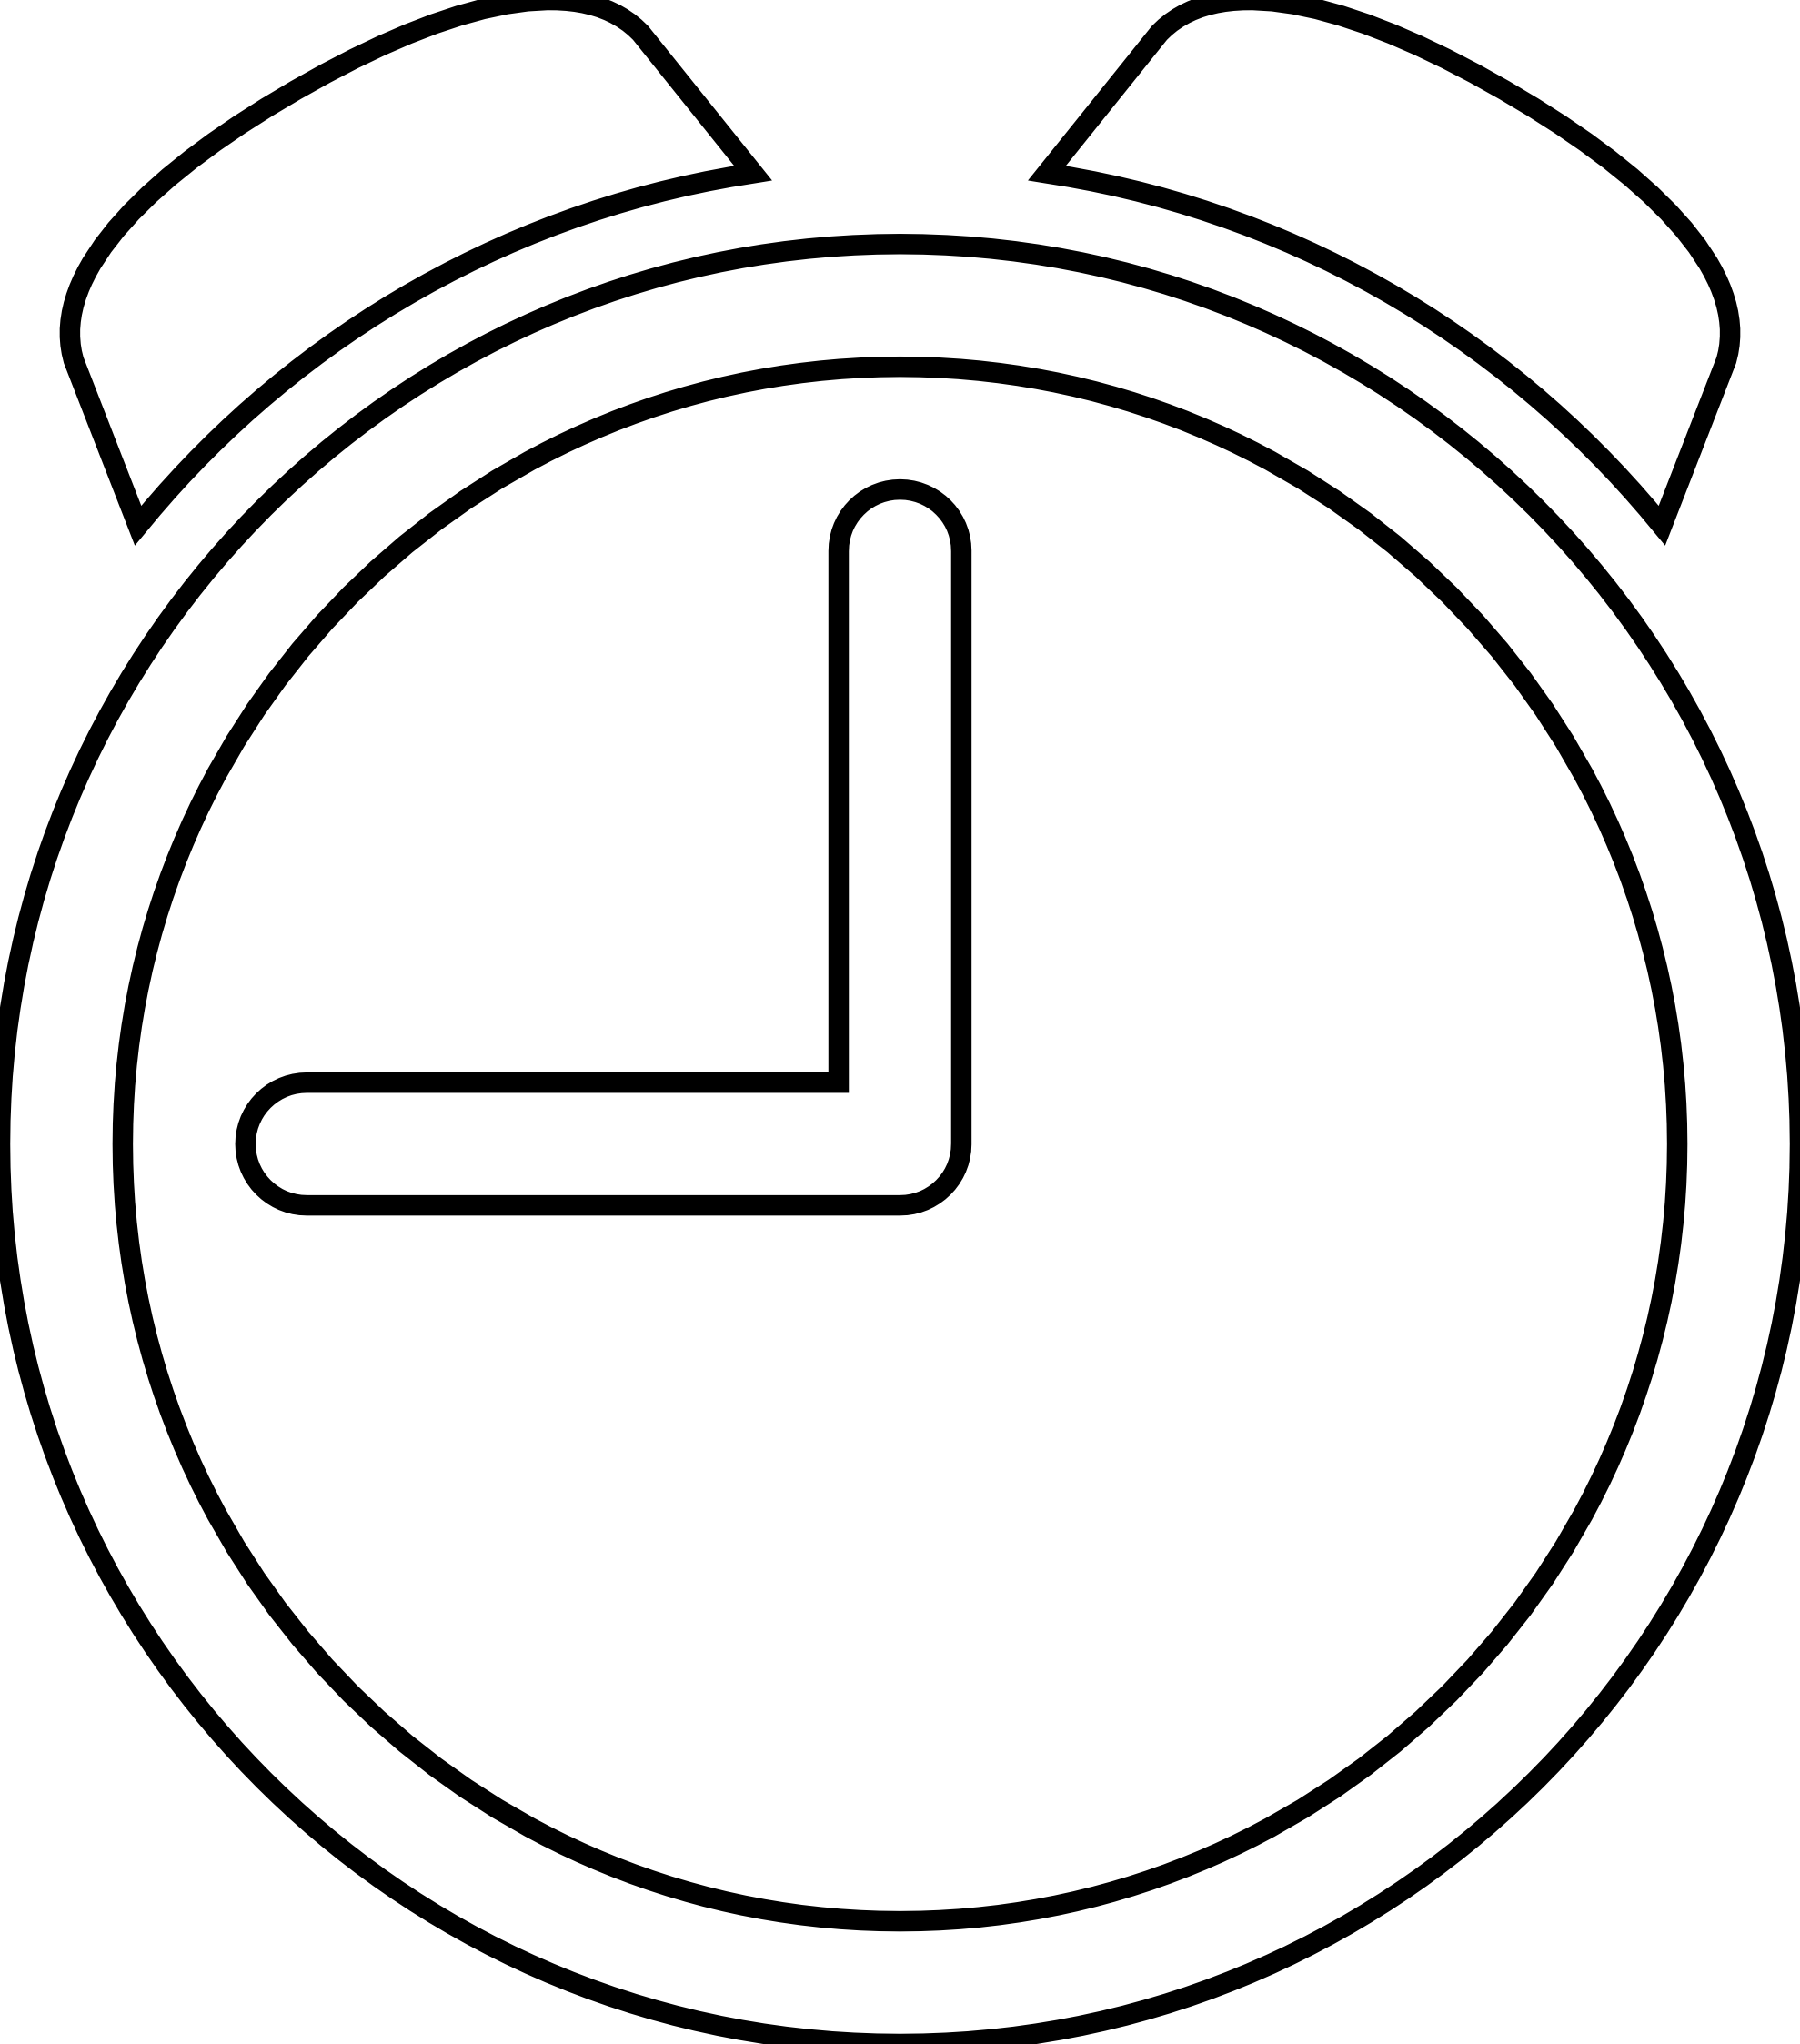 Clock clipart black and white. Panda free images clockclipartblackandwhite